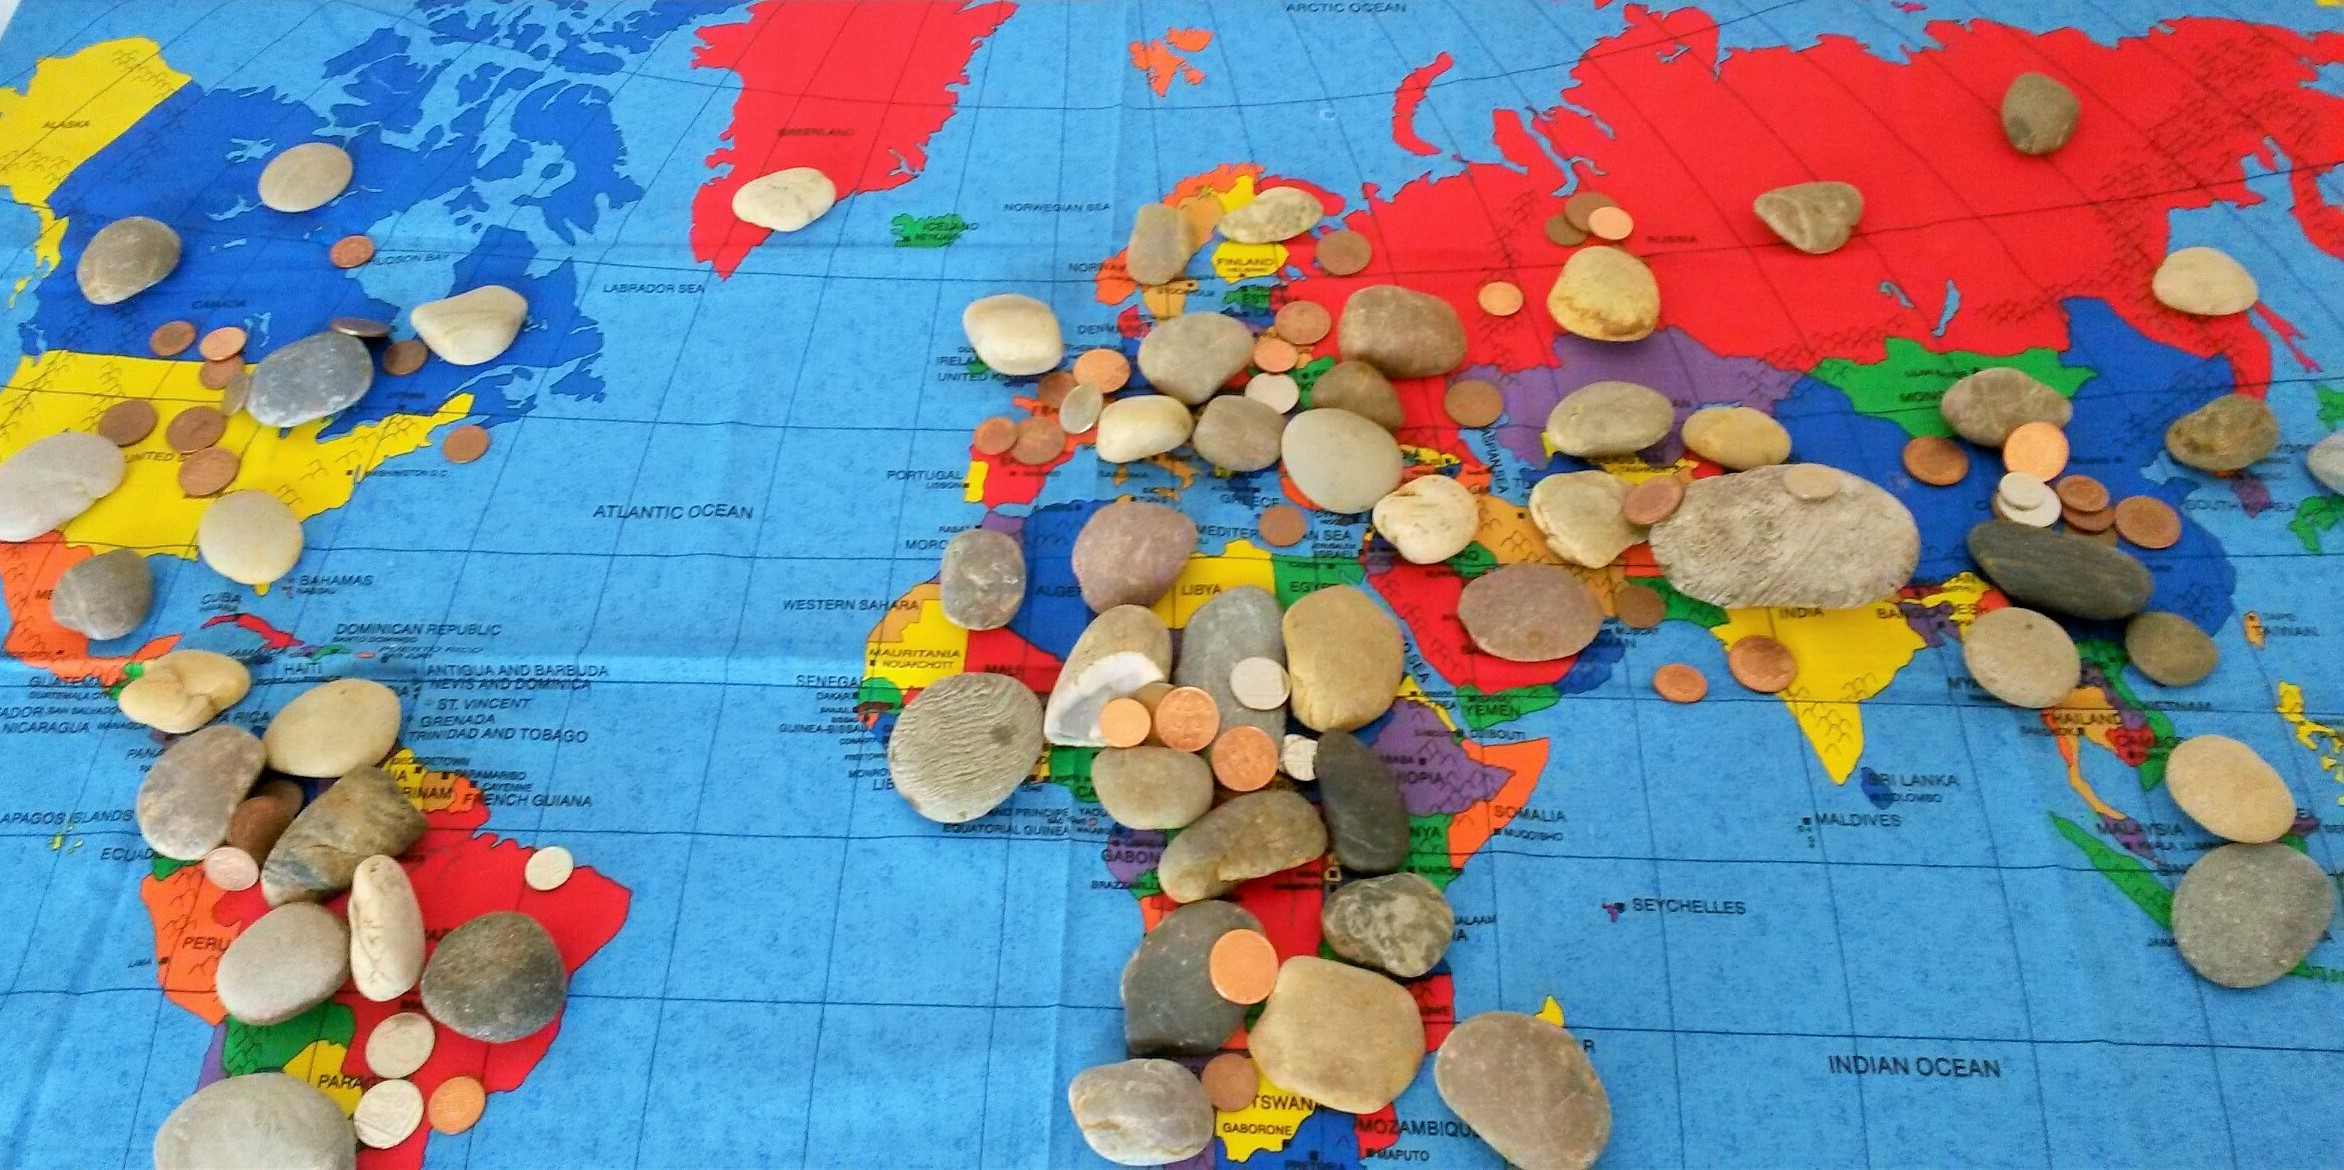 Map burdened symbolically with stones and coins